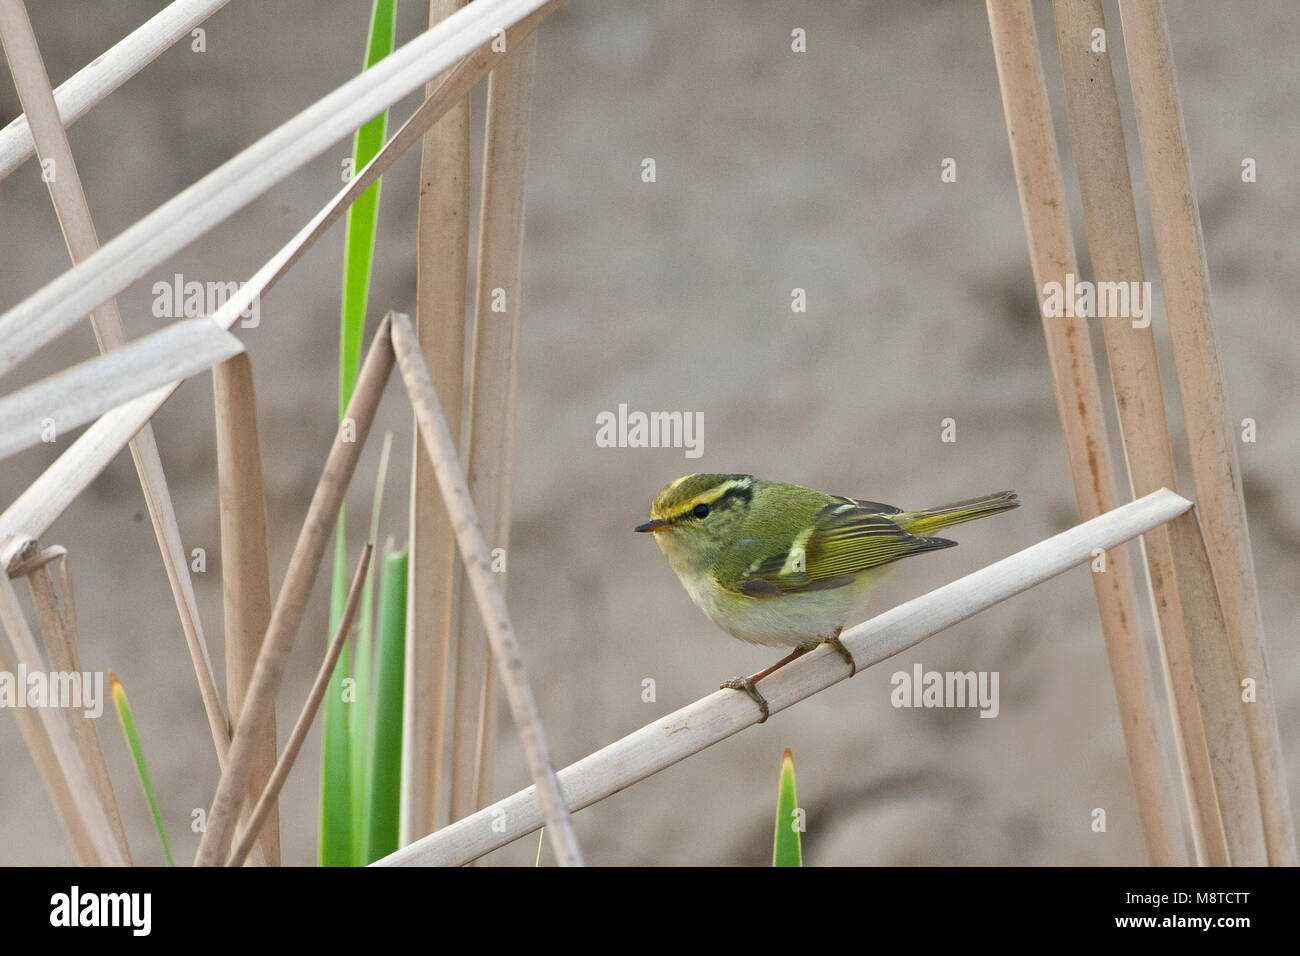 Doortrekkende Pallas' Boszanger aan de oostkust van China; Migrant Pallas's Leaf Warbler (Phylloscopus proregulus) Stock Photo